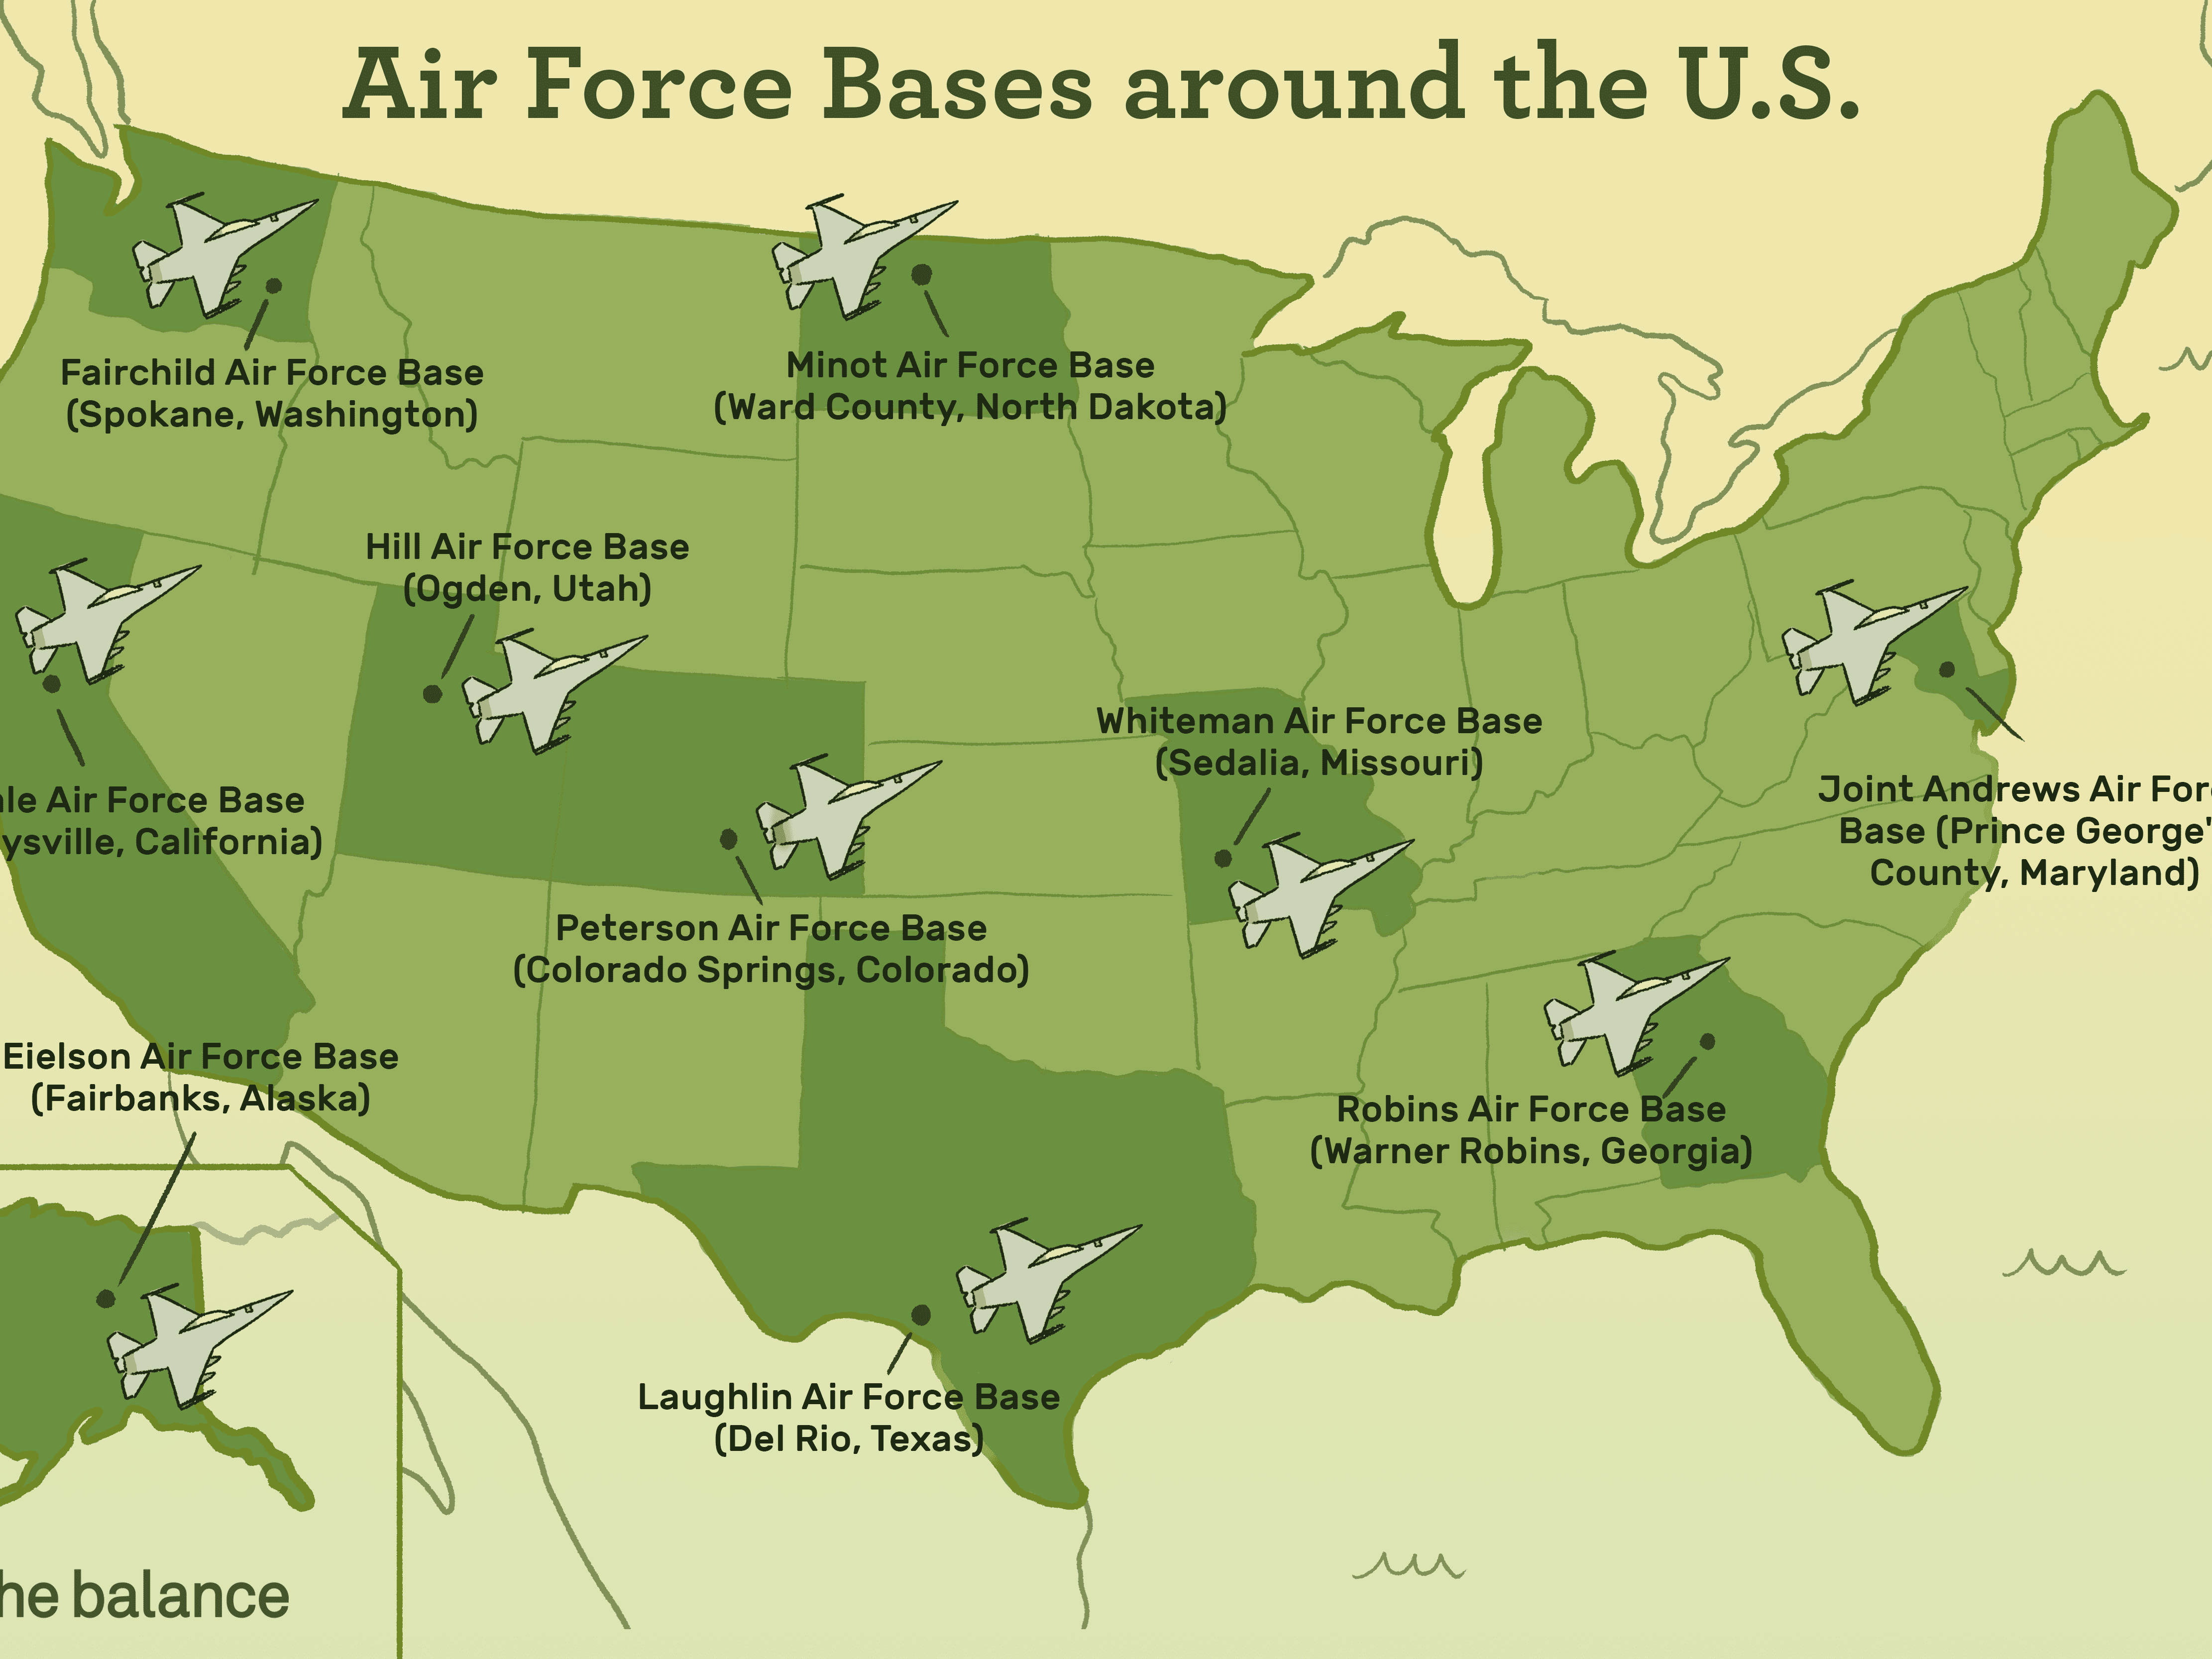 U.S. Air Force Major Bases and Installations Map Of Air Force Bases on map of all army bases, map of national guard bases, map of hill air force, map of robins air base, map of military bases, map of army bases in the united states, map of us bases, map of selfridge air base, map of air force academy colorado springs, map of coast guard air stations, map of tachikawa air base, map of manufacturing plants, map of american bases, map united states air force, map of air force installations, map of power stations, strategic air command bases, map of pacaf, argentina military bases, map of usaf installations,